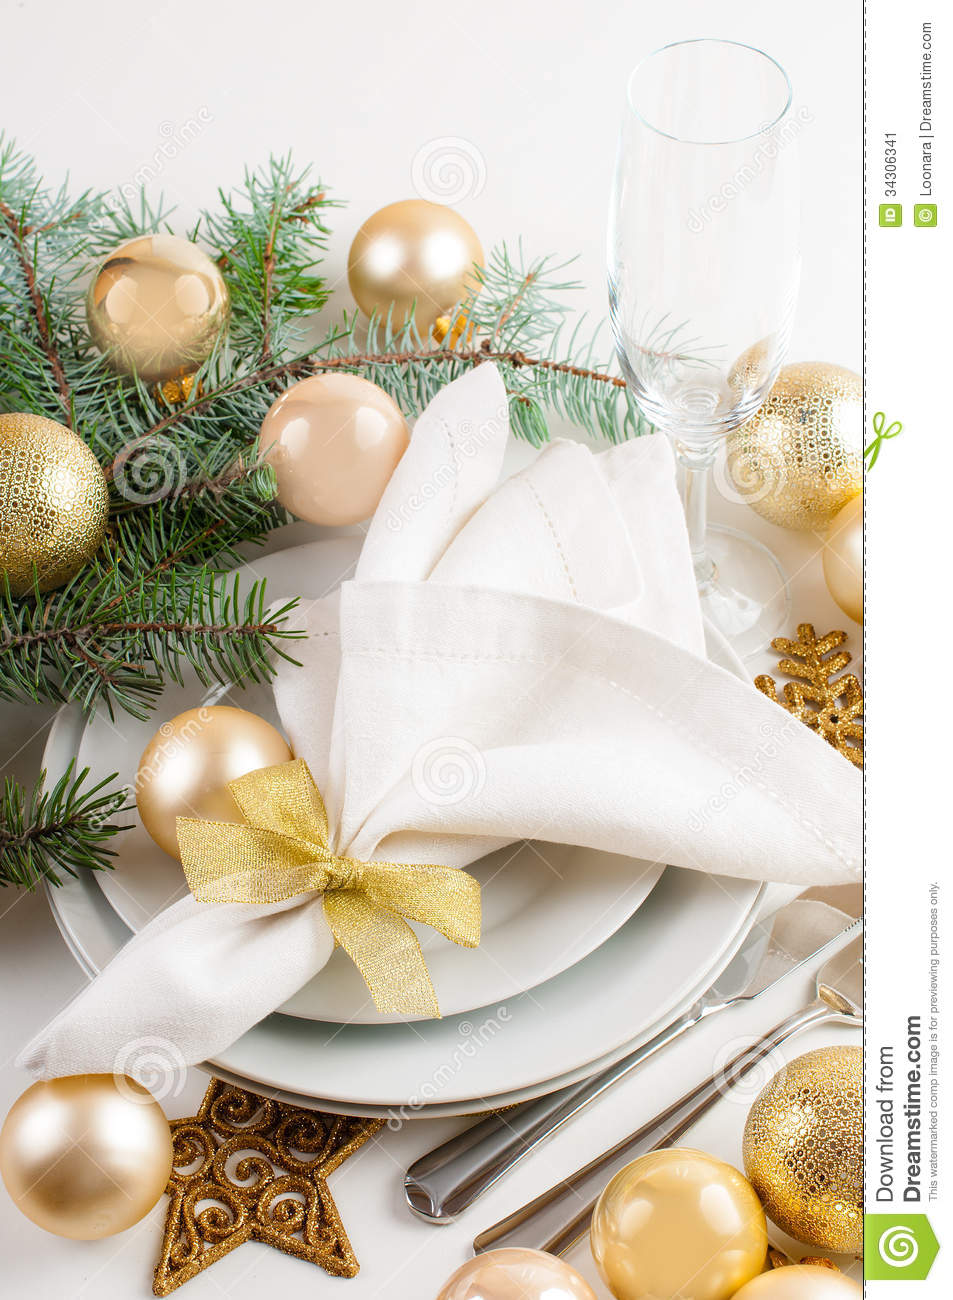 Christmas table decorations gold - Christmas Table Setting In Gold Tones Stock Image